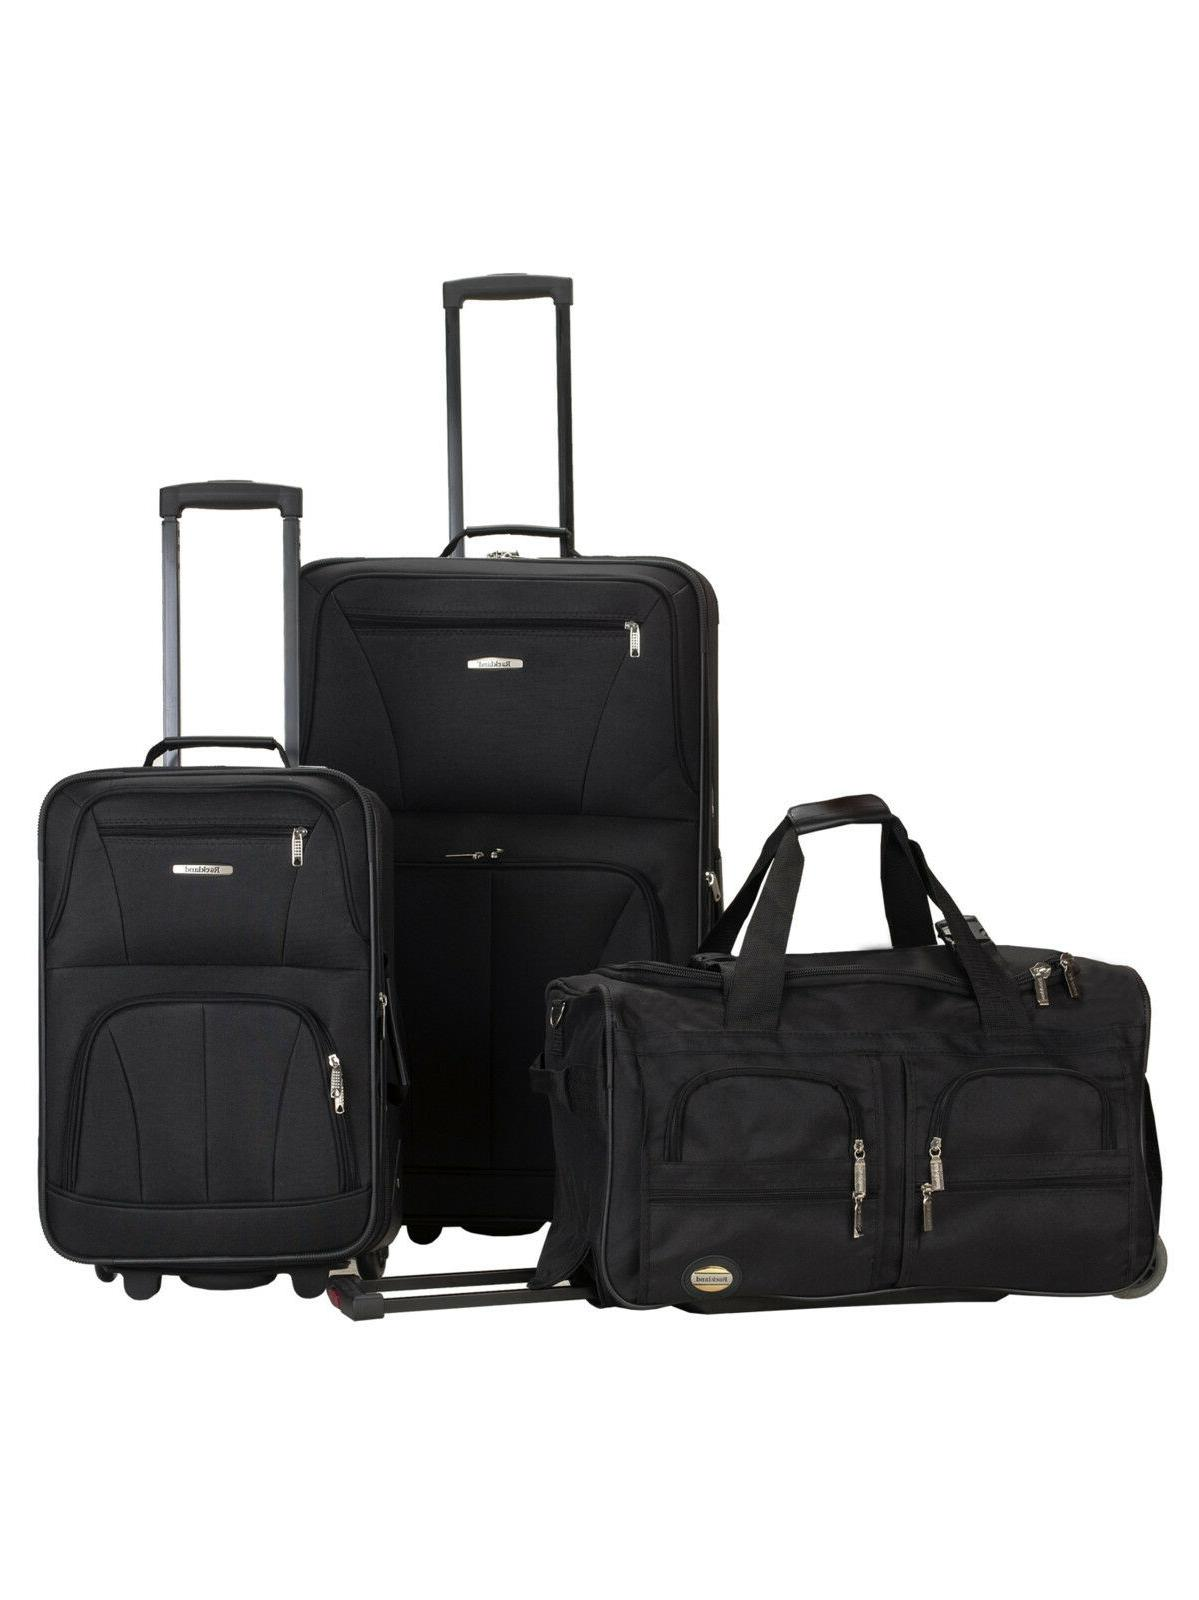 ROCKLAND MELBOURNE ABS LUGGAGE